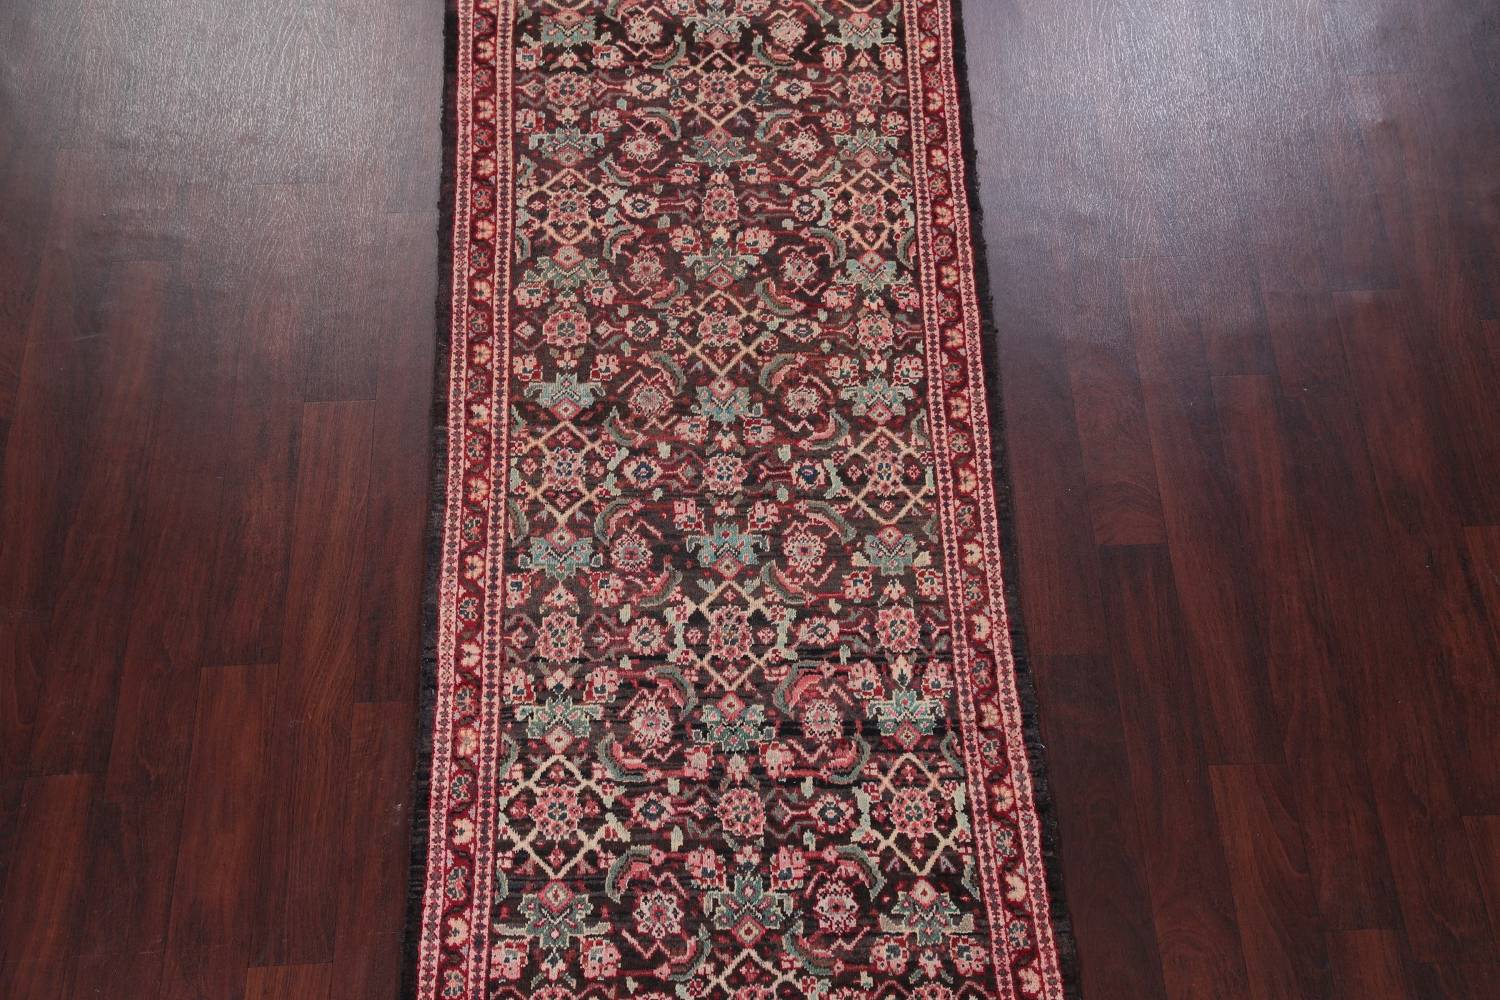 Antique  Sultanabad Persian Runner Rug 3x10 image 3